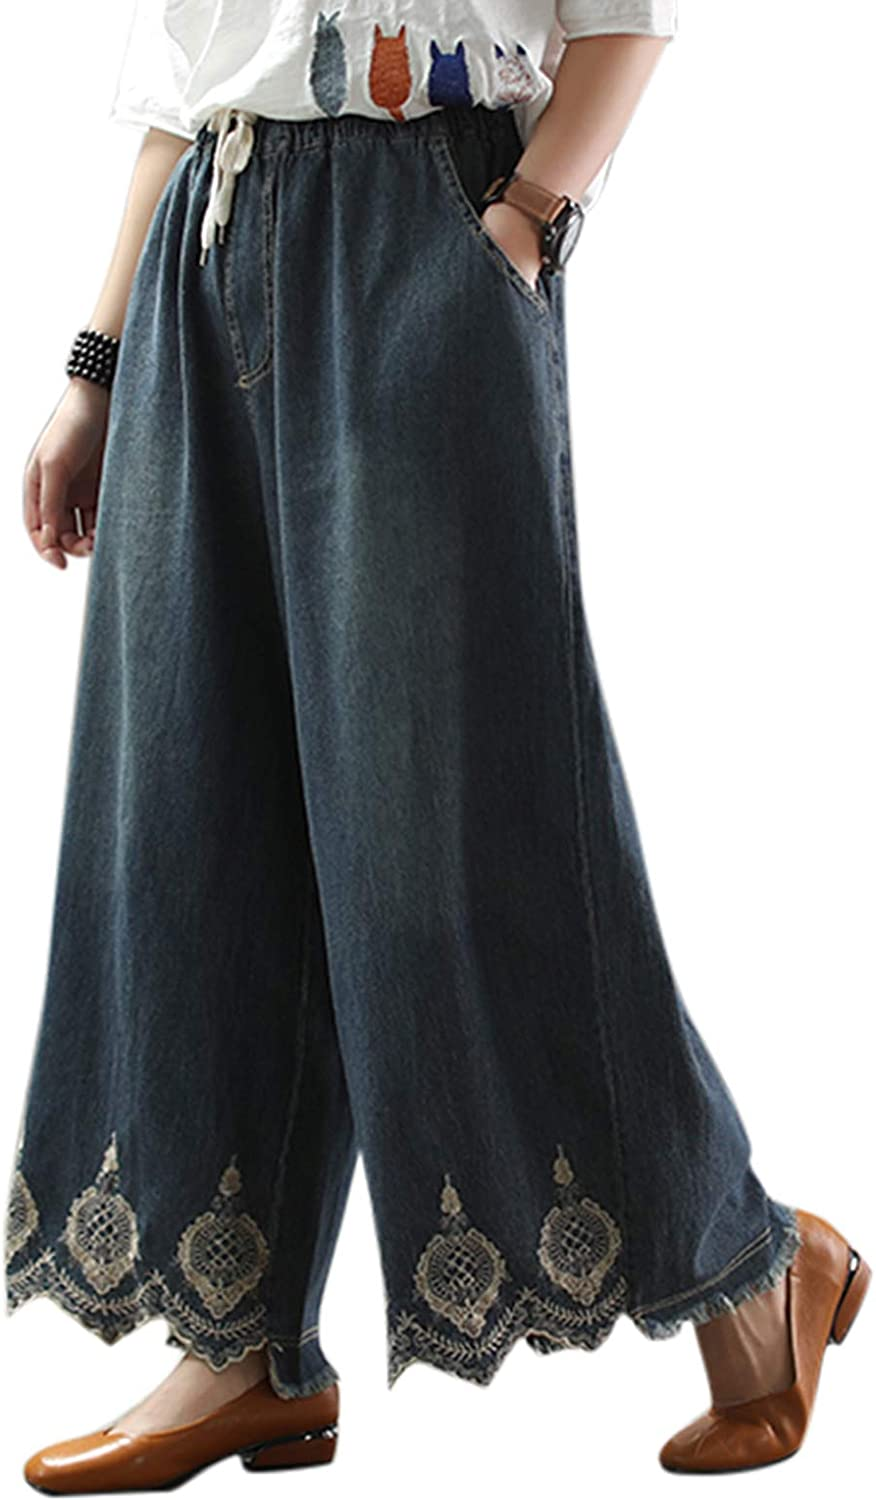 Women's Spring Autumn sale Max 72% OFF Vintage Cropped Pants Casual Harem T Loose